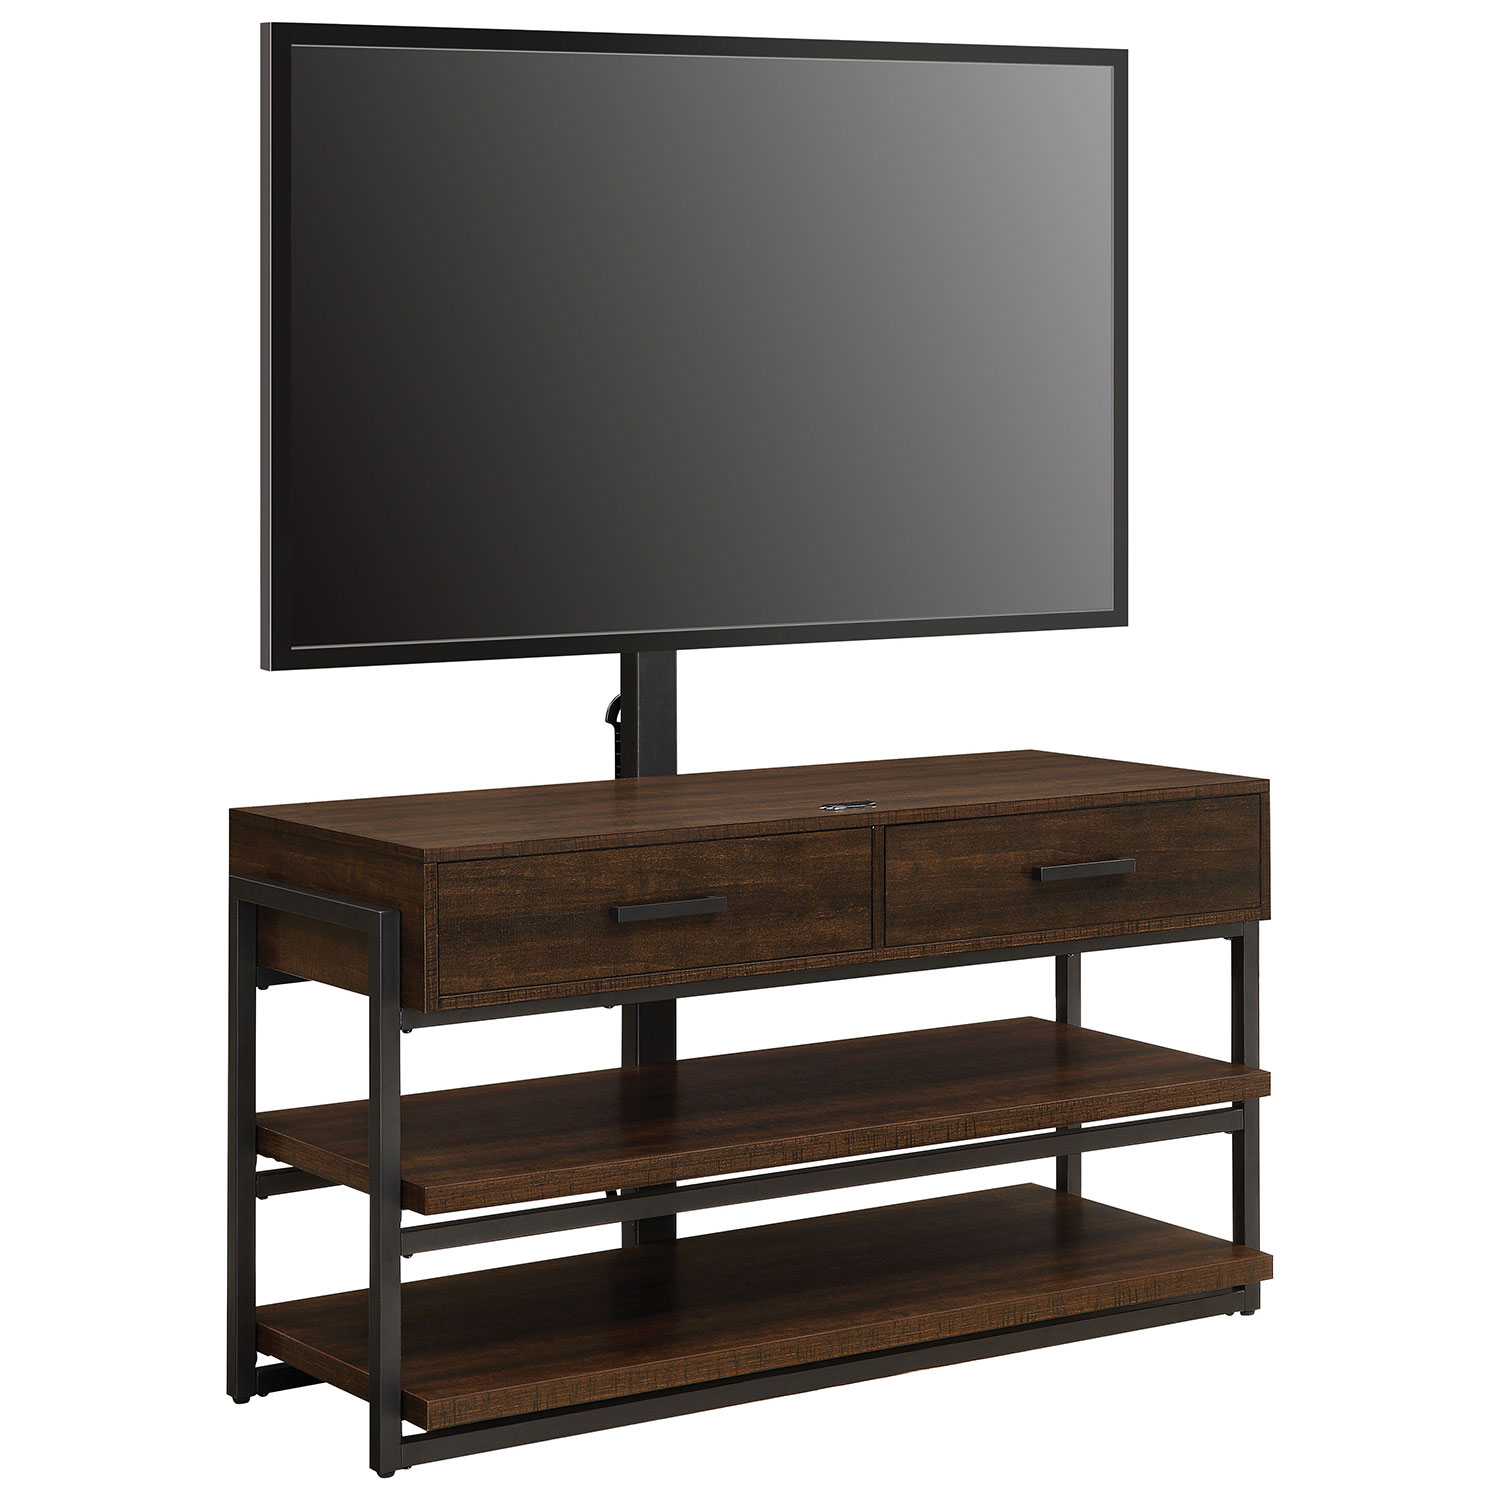 "Whalen 3 in 1 TV Stand for TVs up to 60"" Dark Brown Gunmetal TV"